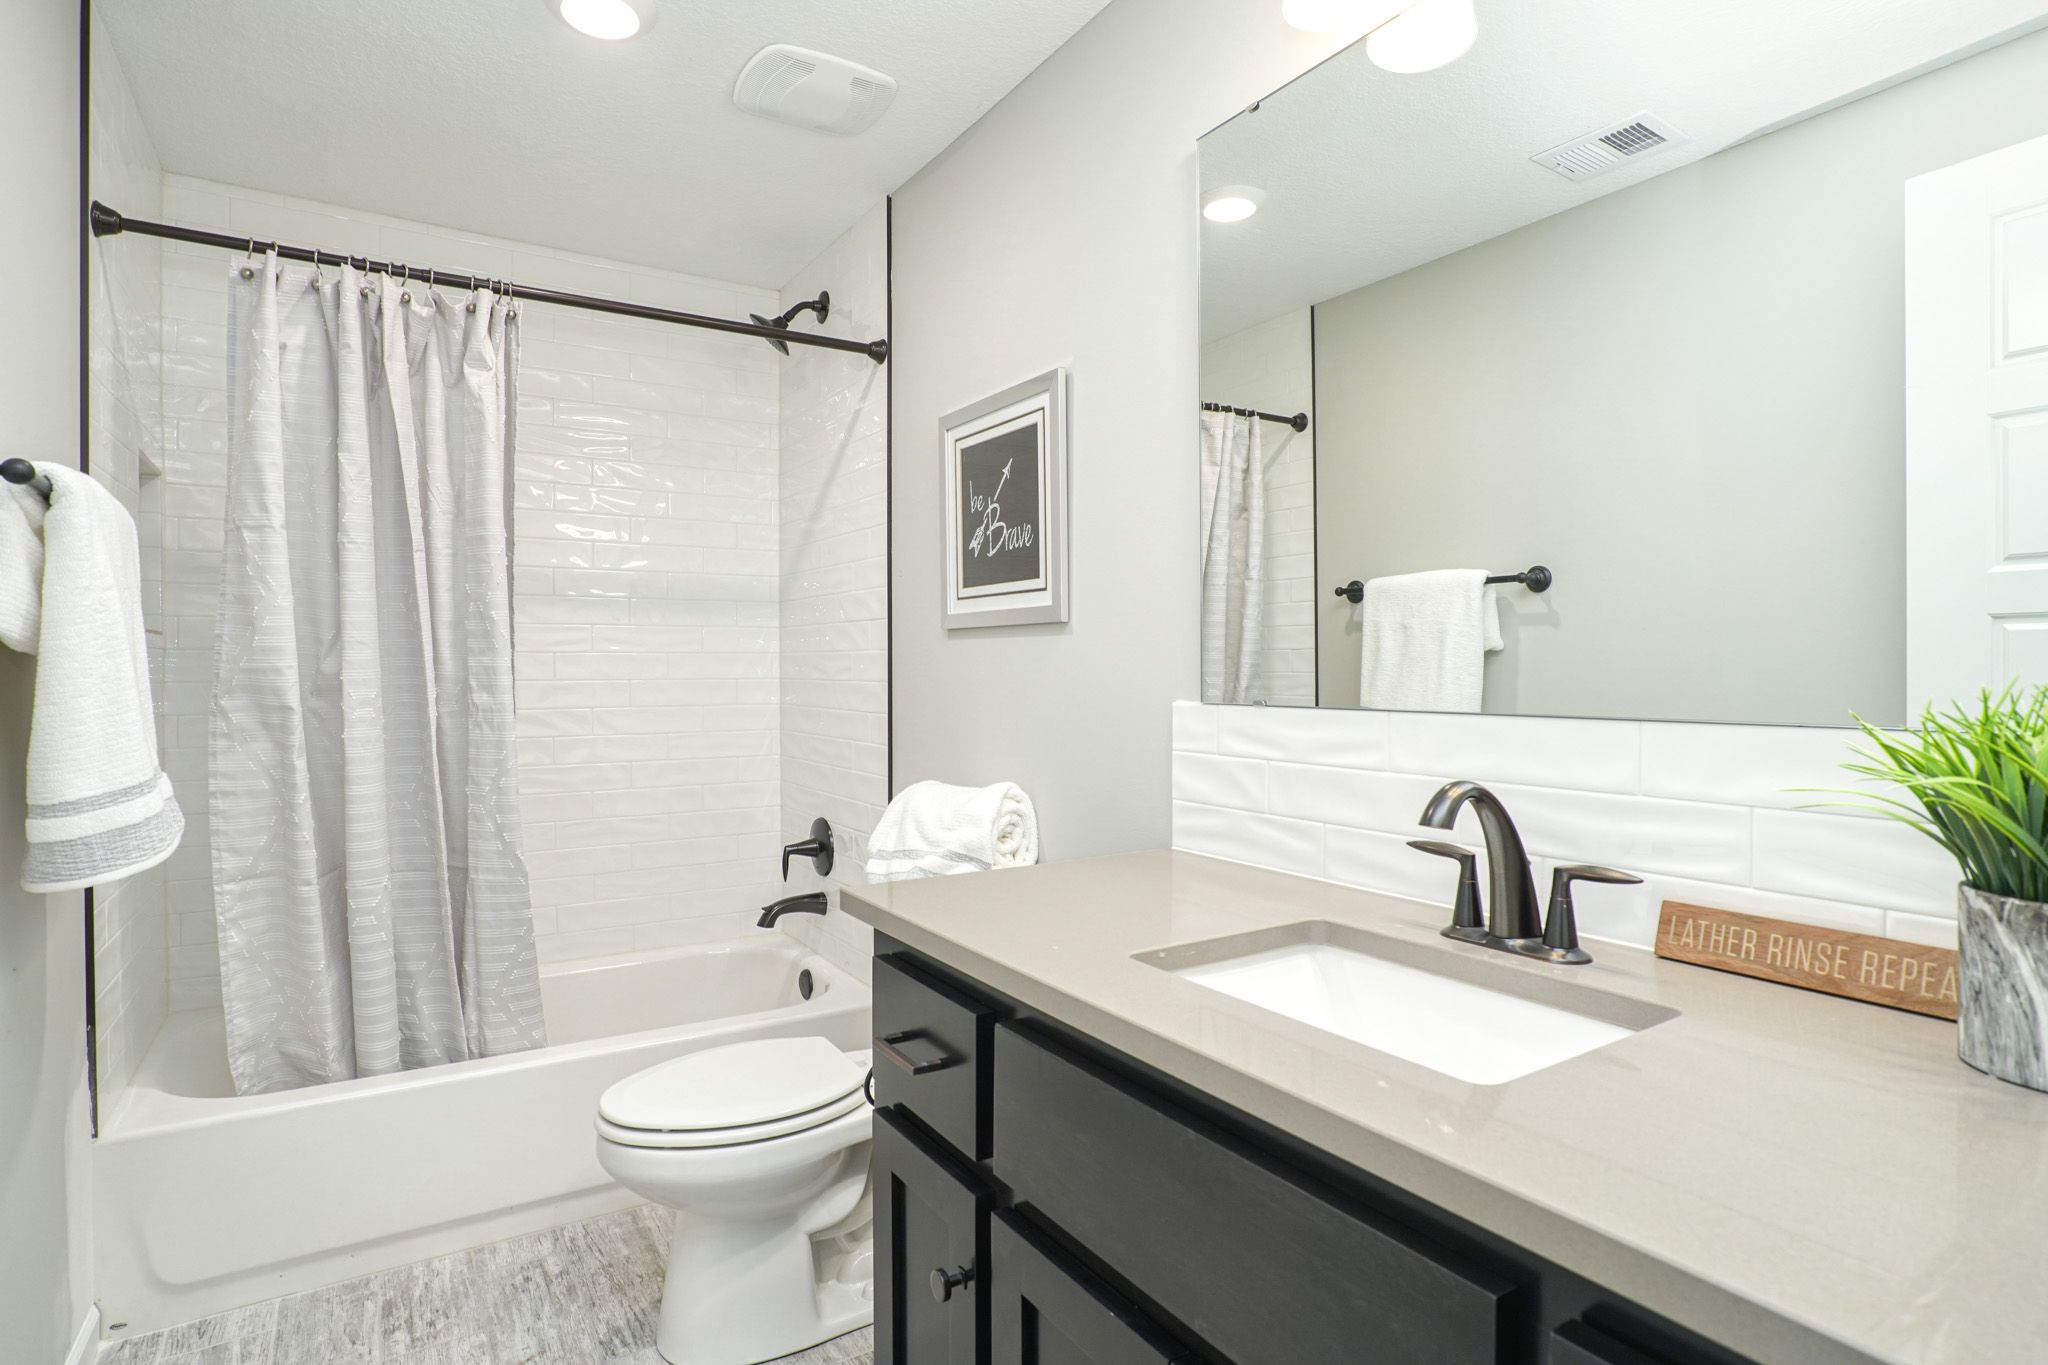 Bathroom featured in the Newhaven By Summit Homes in Kansas City, MO